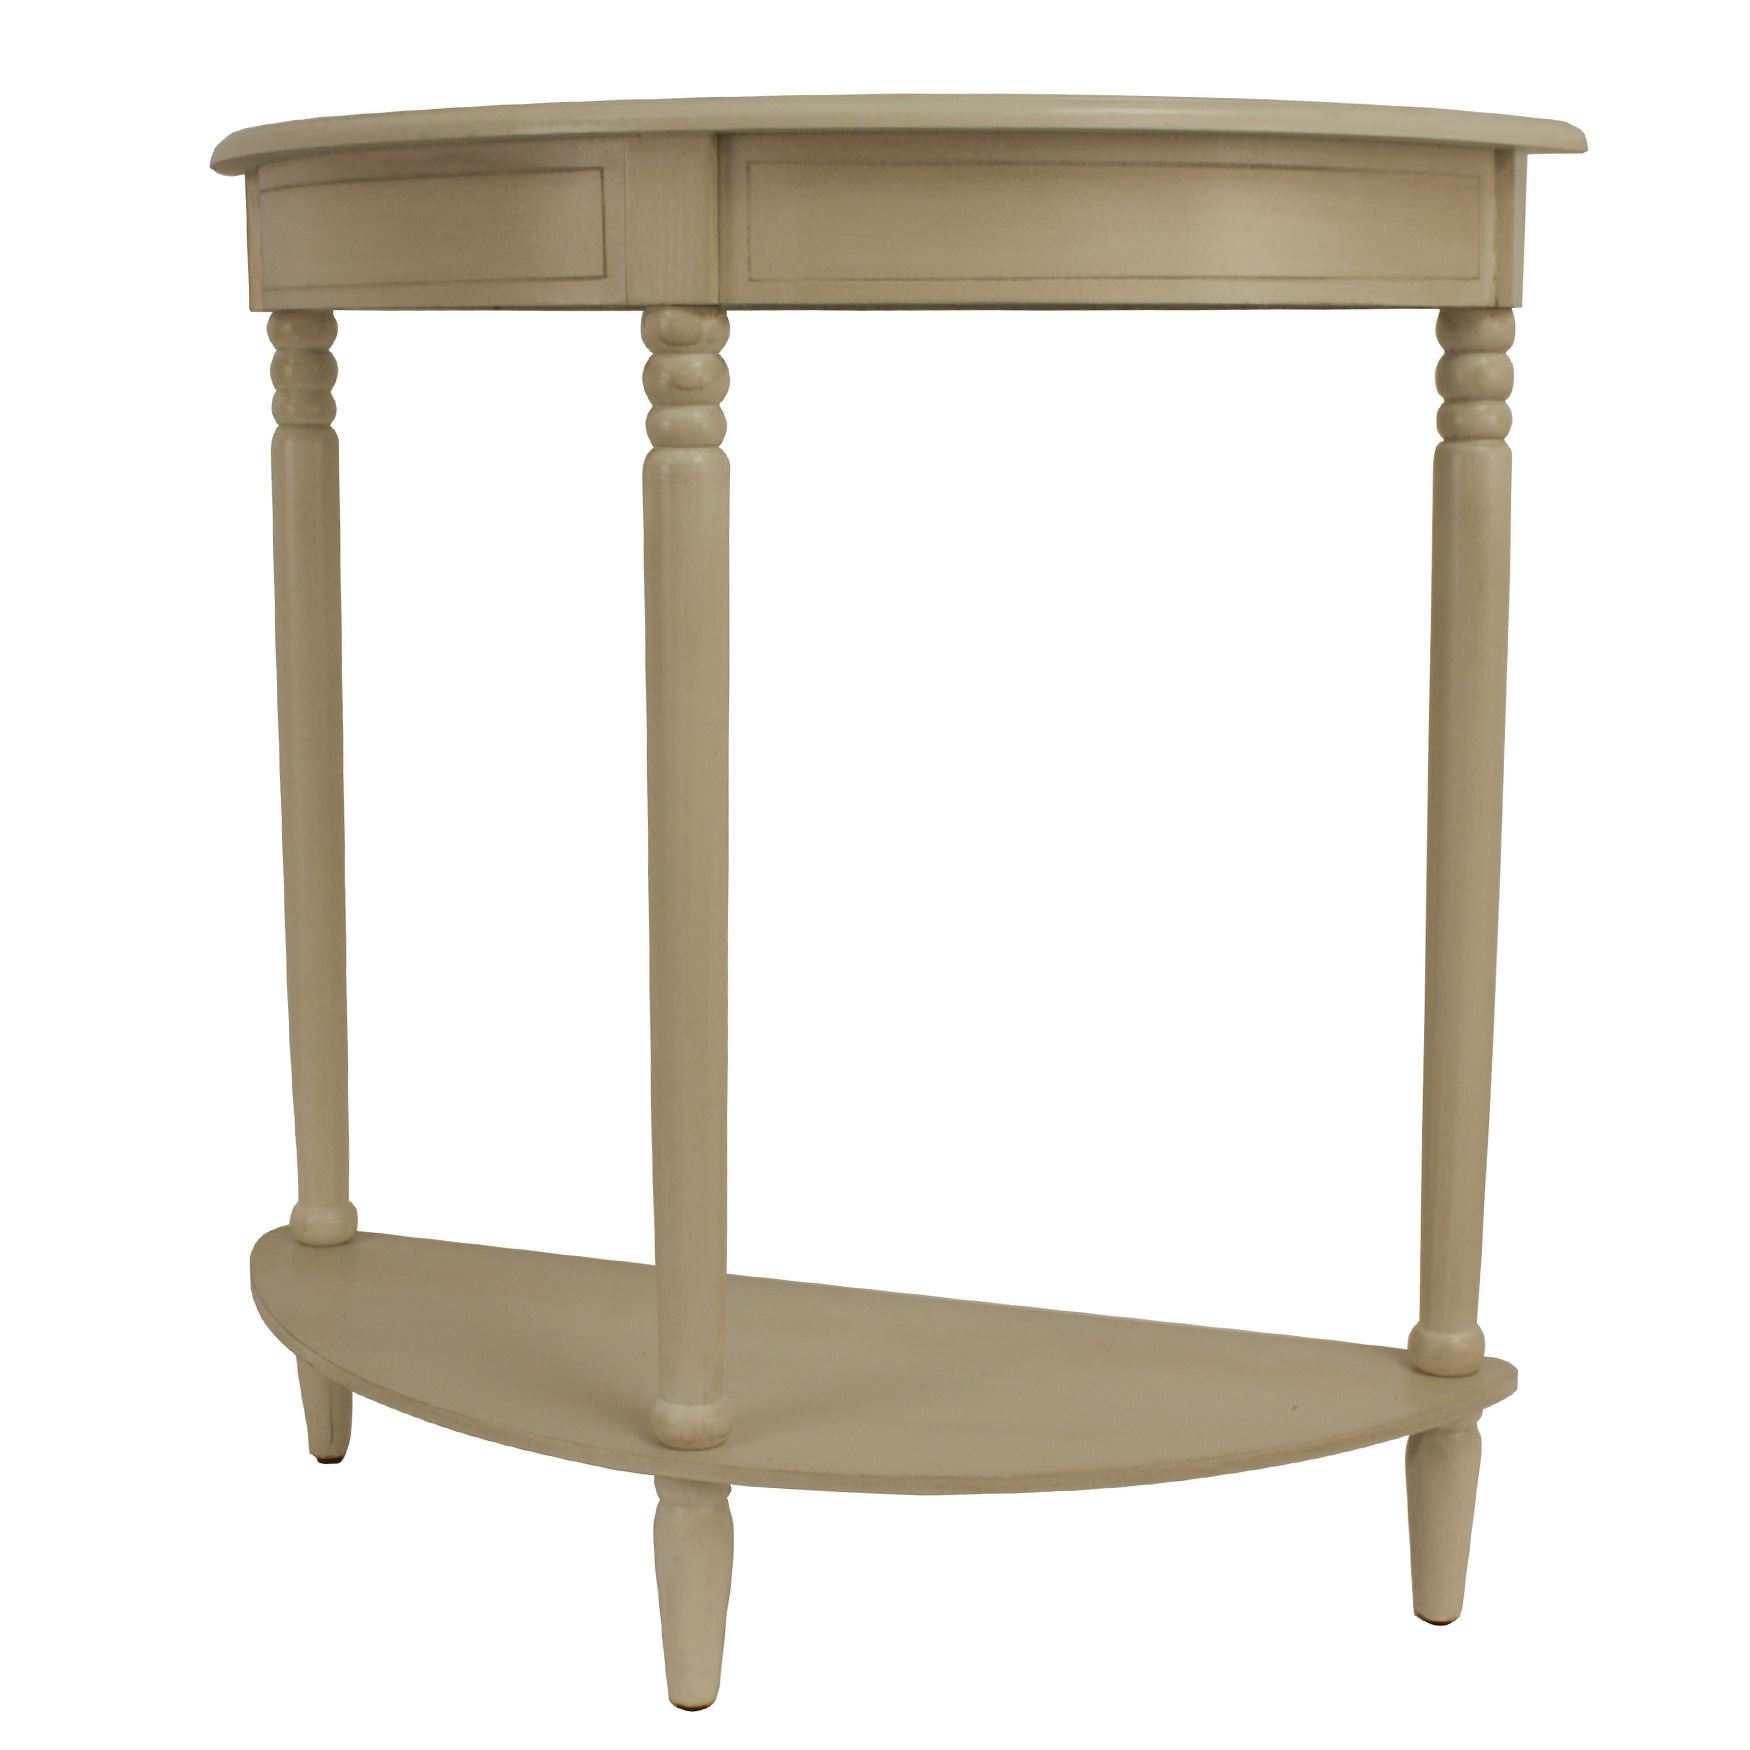 antique white simplicity half round accent table plus size coffee with drawer butler tray small metal end off and tables mirrored bedside ikea rectangular cover outdoor furniture